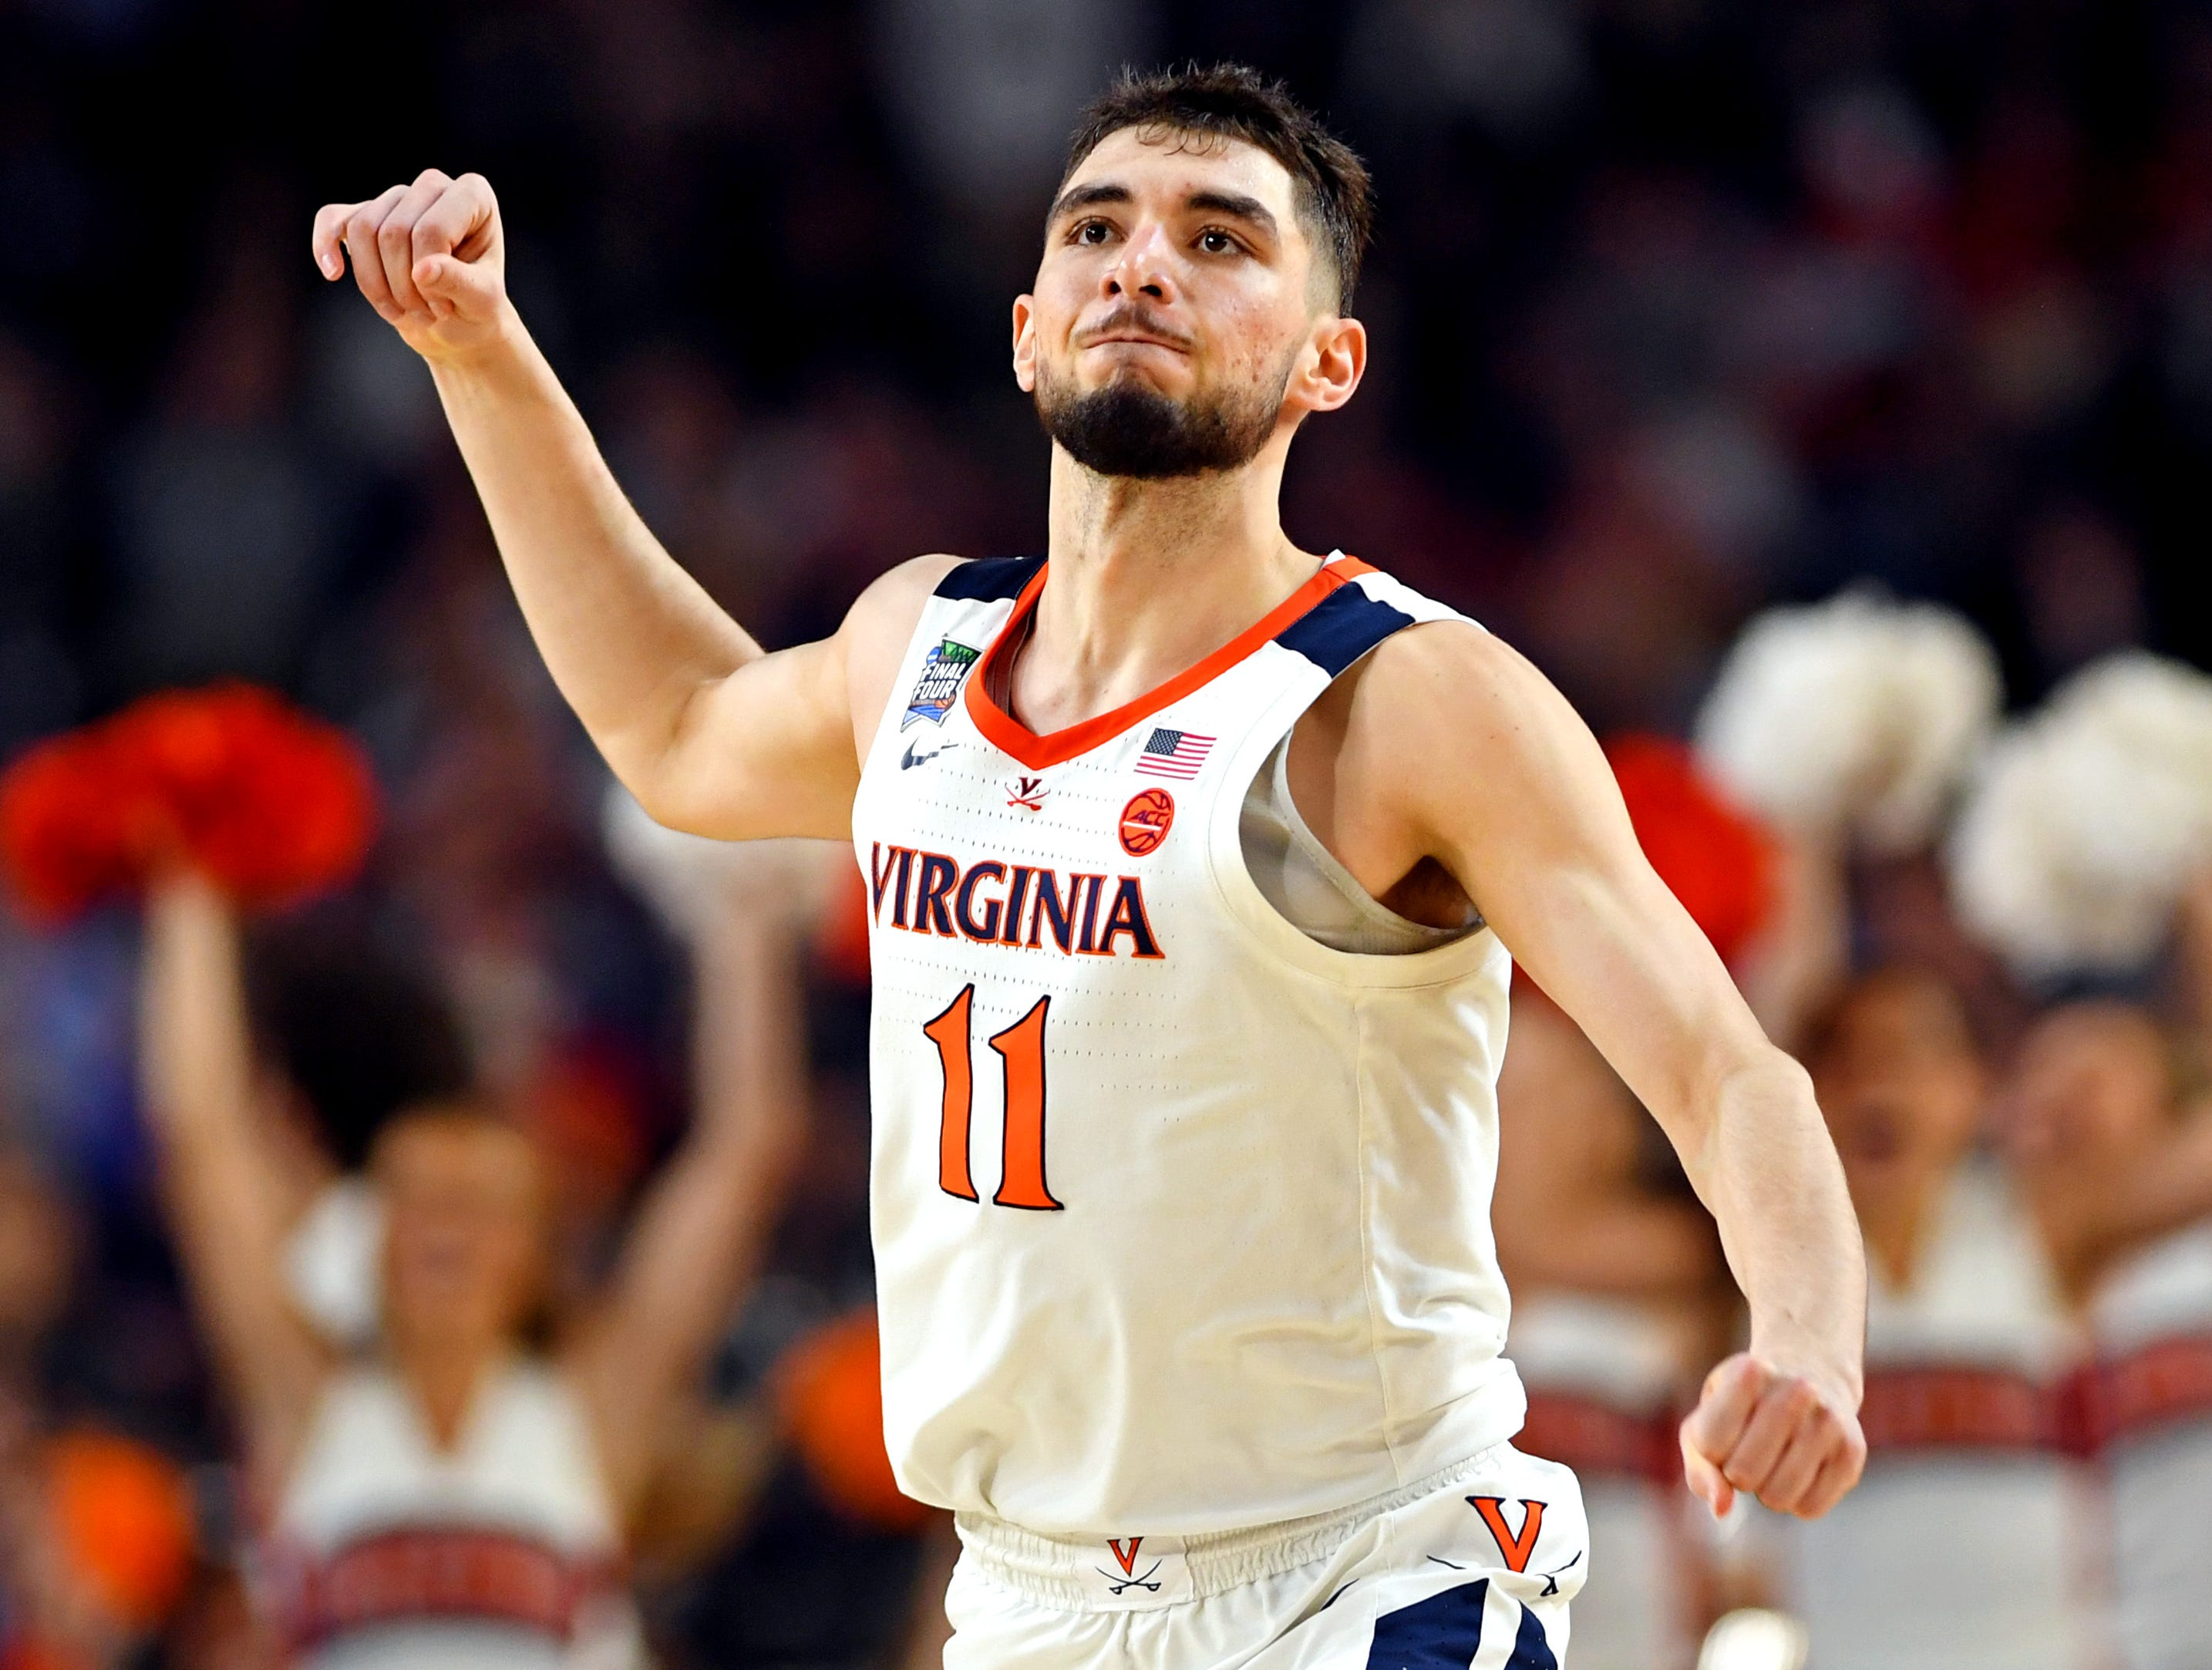 Virginia Cavaliers guard Ty Jerome reacts after a play against the Auburn Tigers.